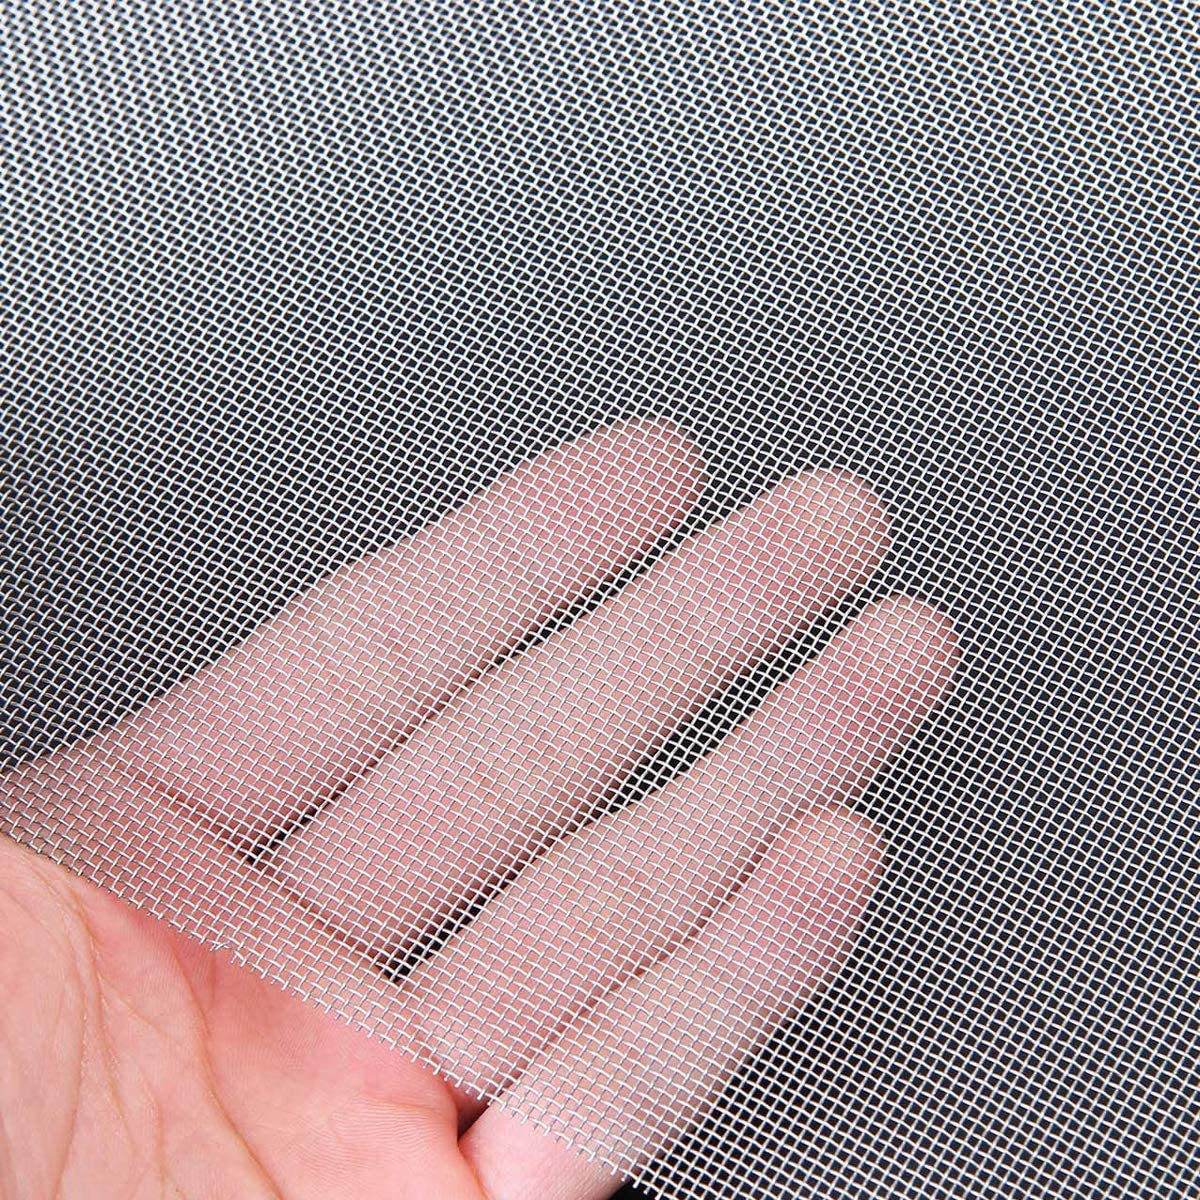 "Stainless Steel 304 Mesh #6 .035 Wire Mesh Cloth Screen 20/""x20/"""